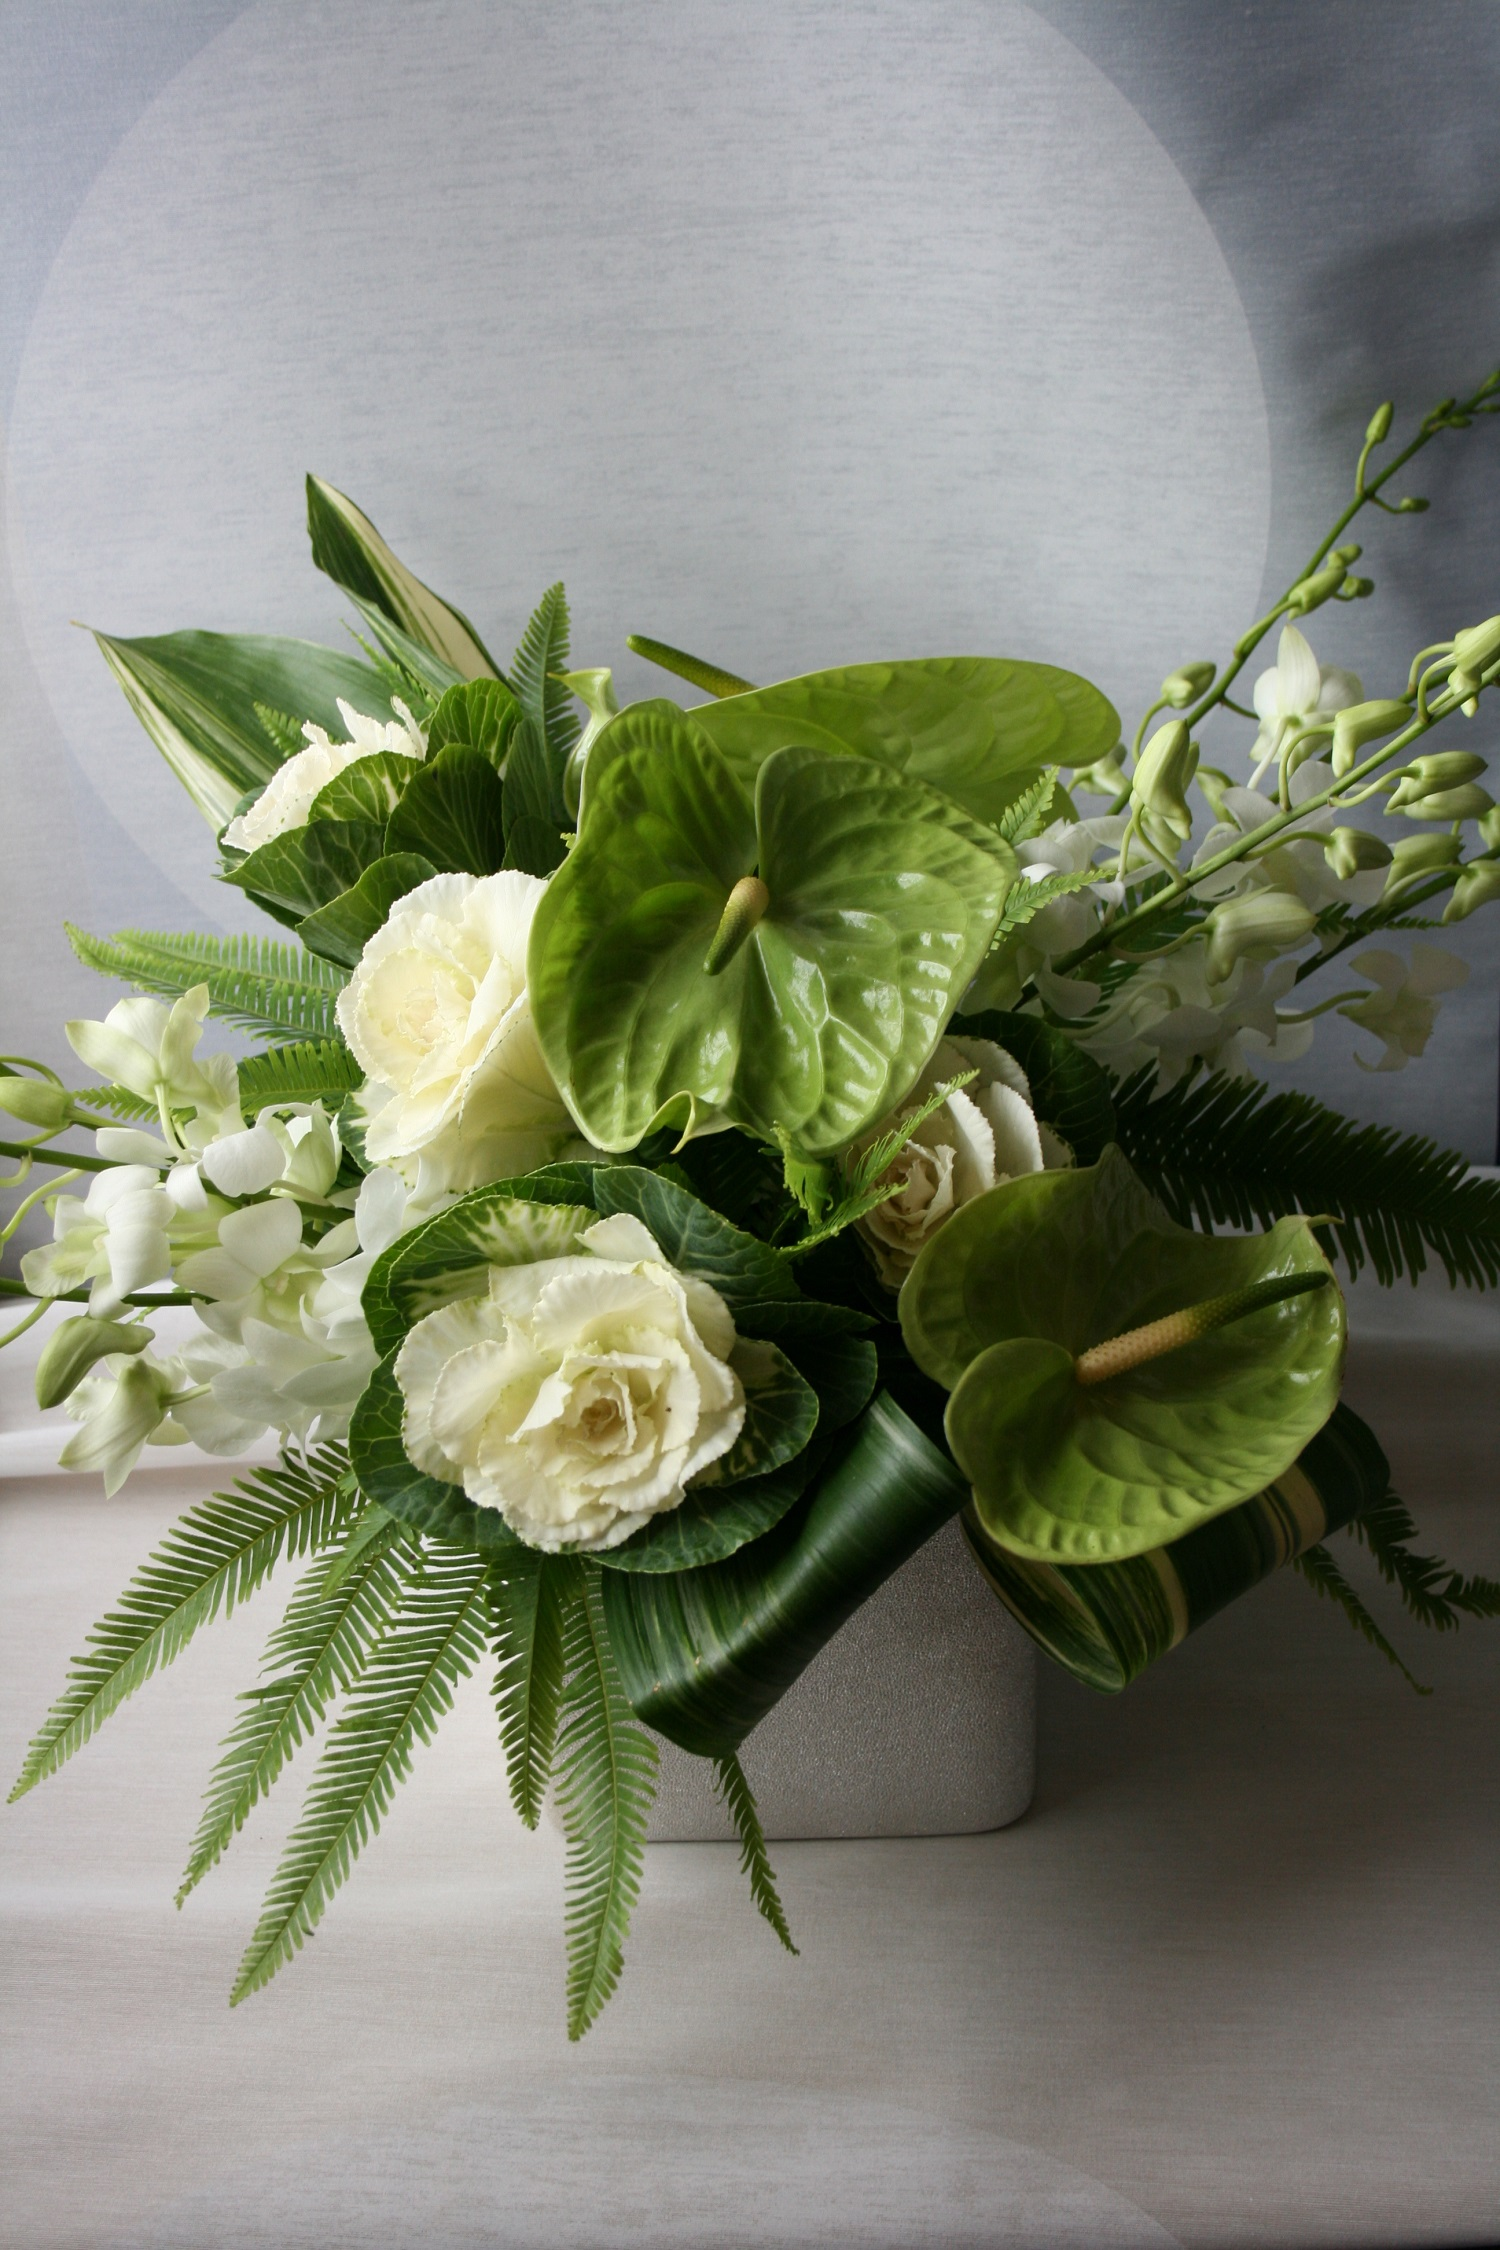 White and green flower arrangements anthurium flower arrangement white and green flower arrangements anthurium flower arrangement minneapolis flower delivery downtown florist modern flower arrangement mightylinksfo Image collections